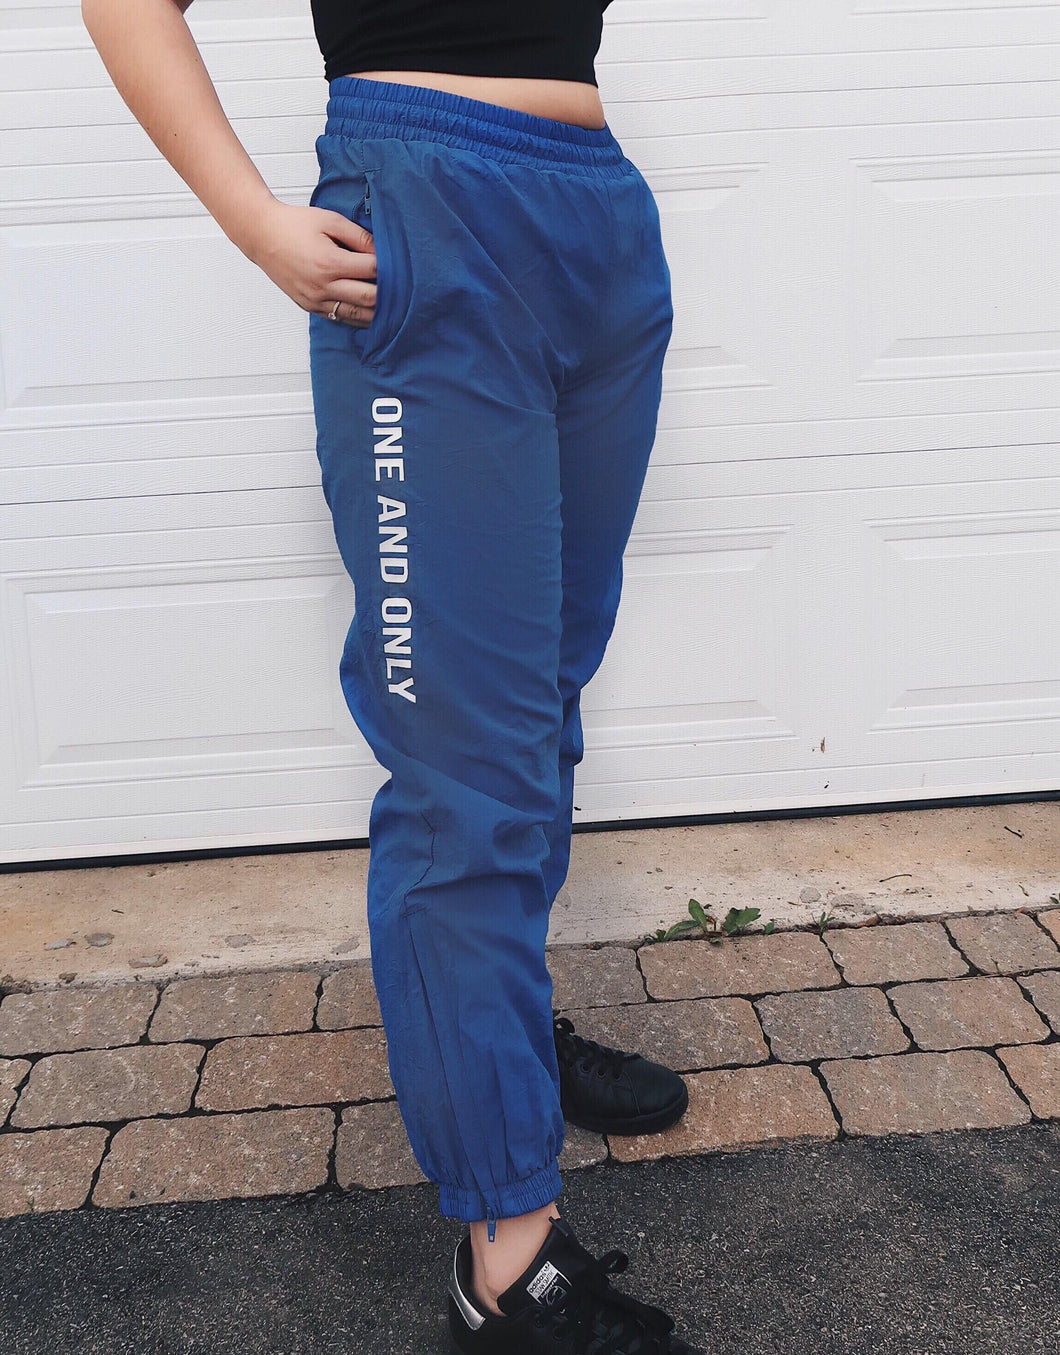 BLUE JEAN trackpants